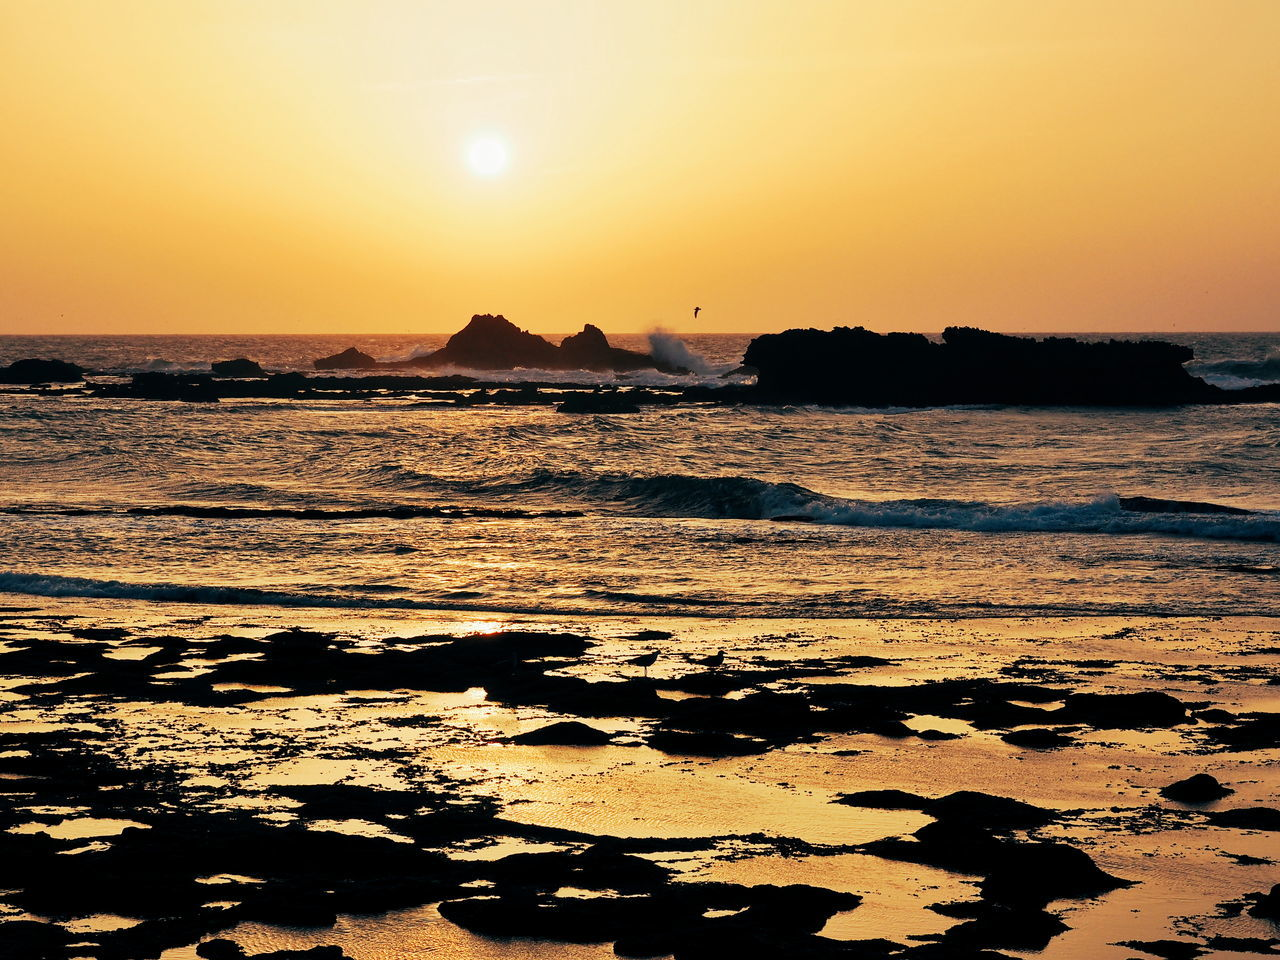 Sunset Water Beach Sea Outdoors Nature Beauty In Nature Sky Dramatic Sky Landscape Travel Destinations No People Gold Colored Bird Day Golden Hour Essaouira Essaouira Bay Waves Waves And Rocks Waves Crashing Morocco